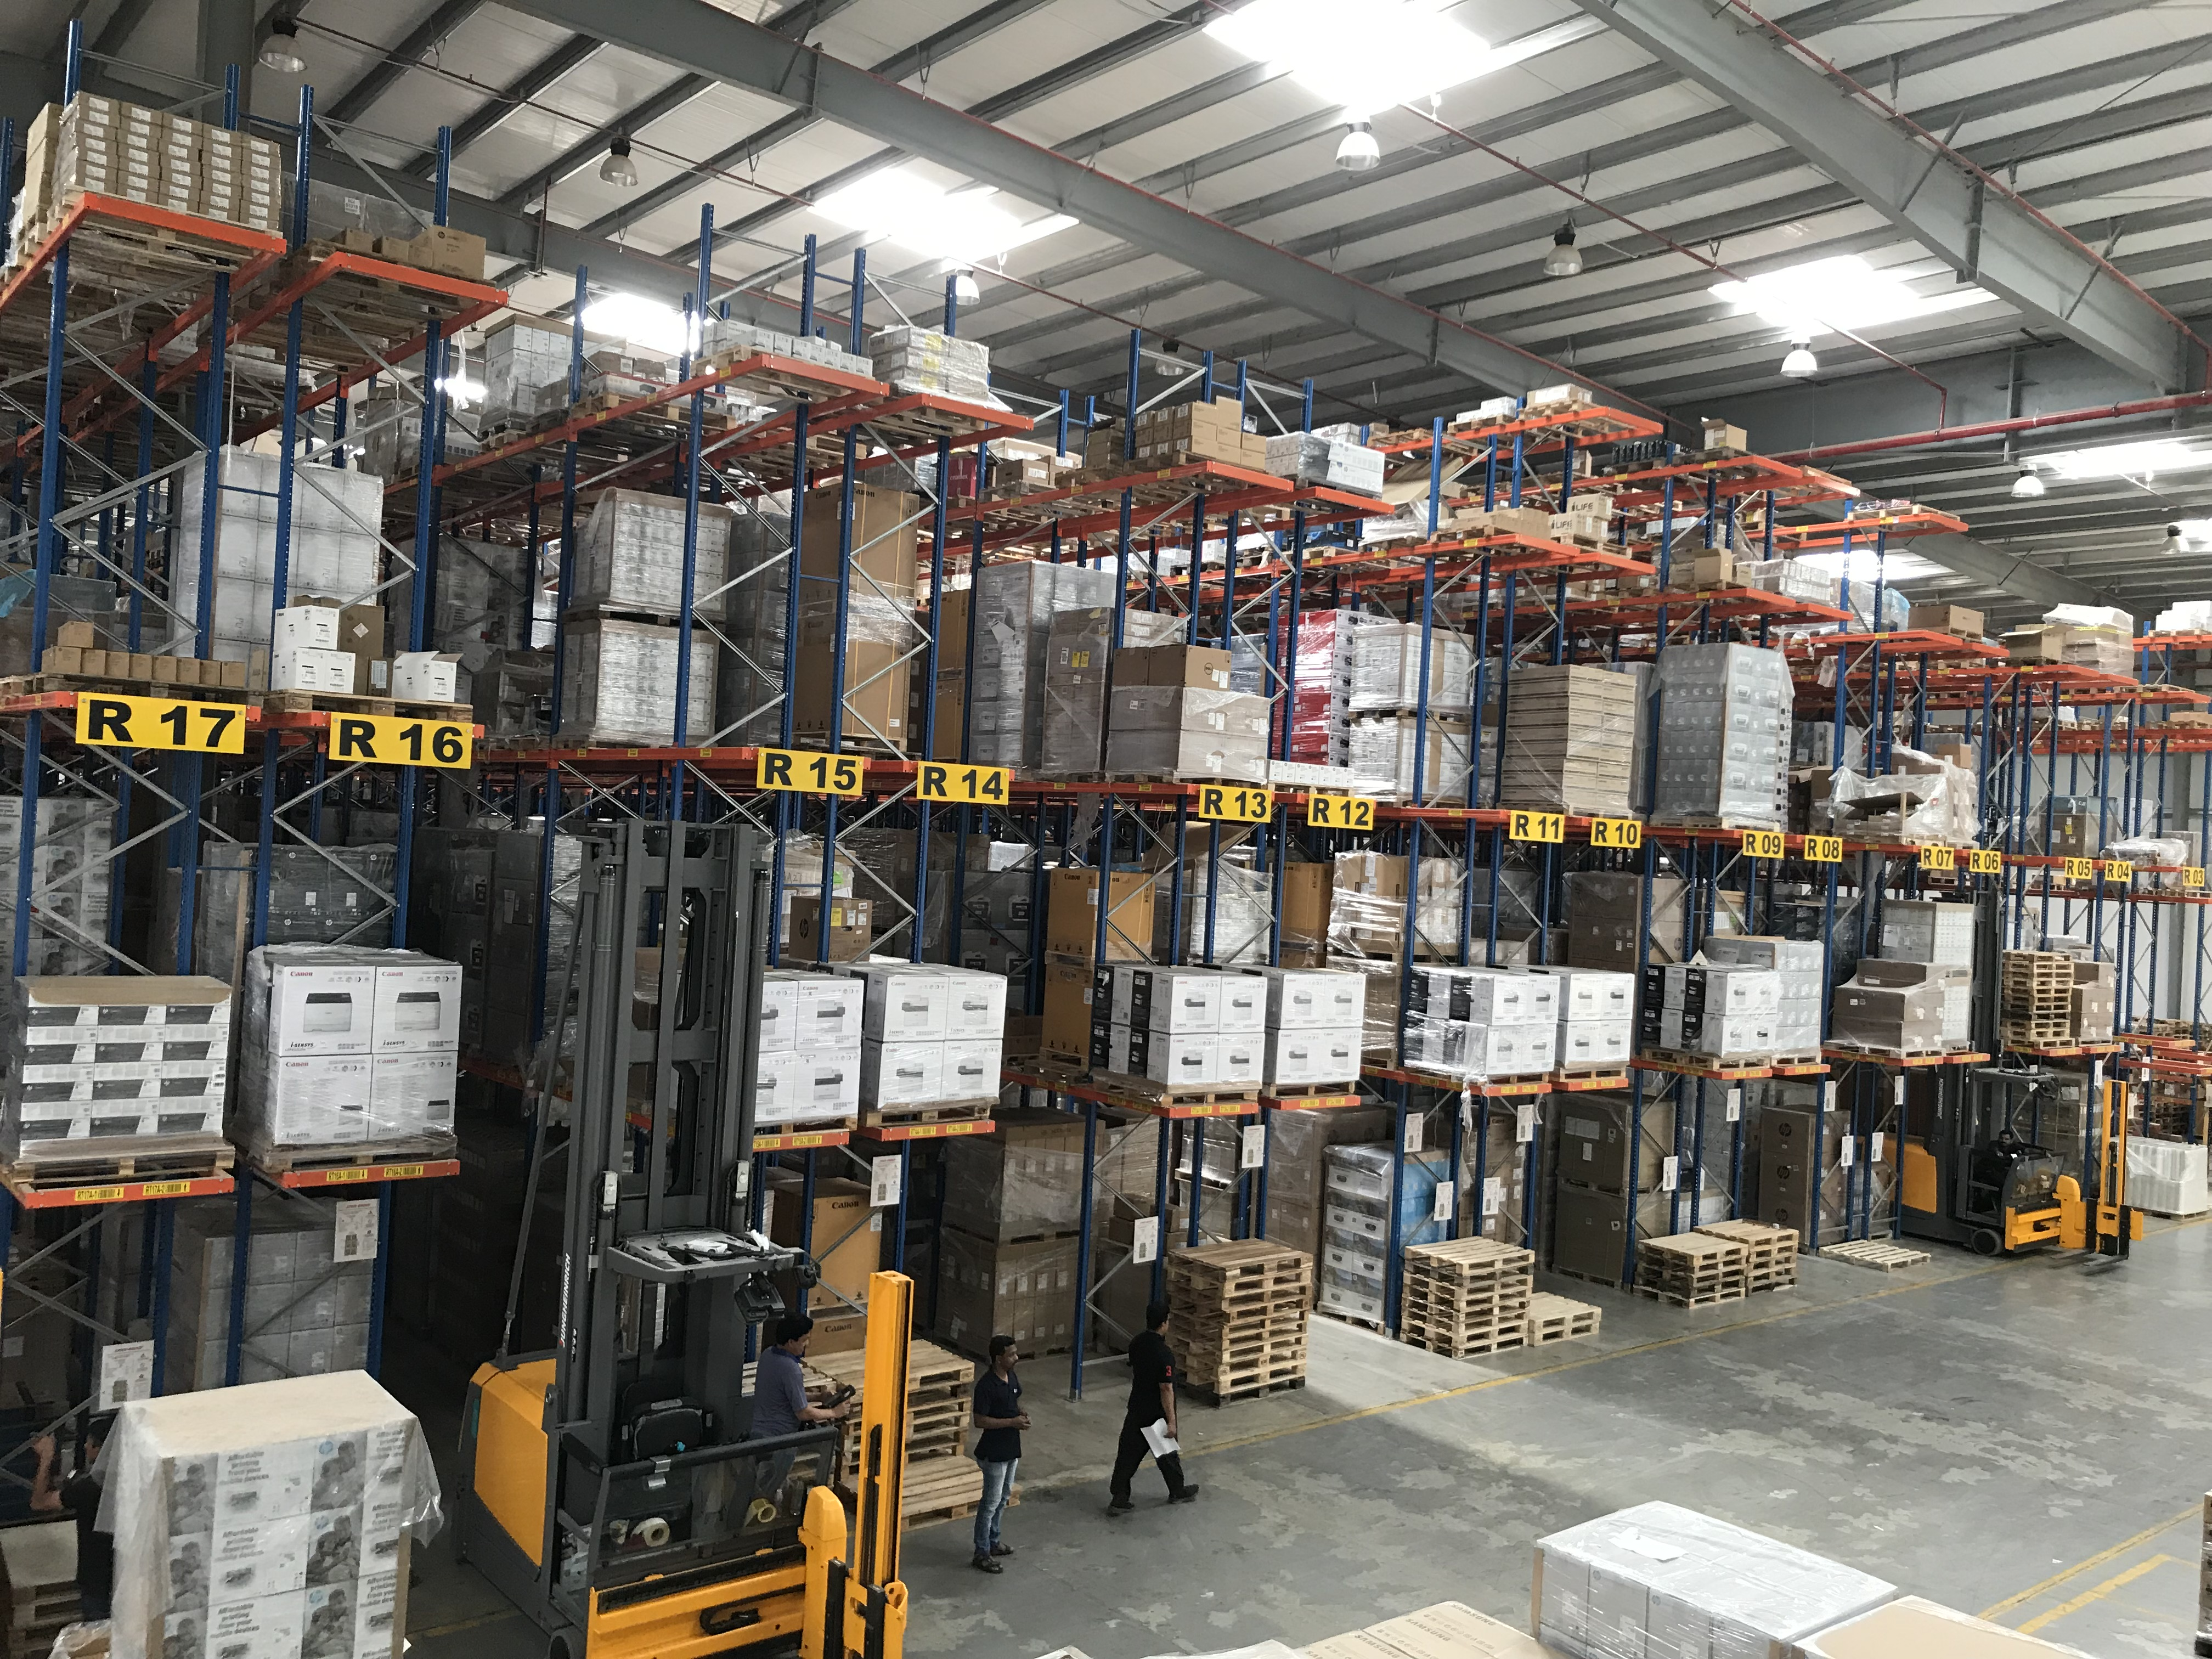 Forklift Operators At The Warehouse